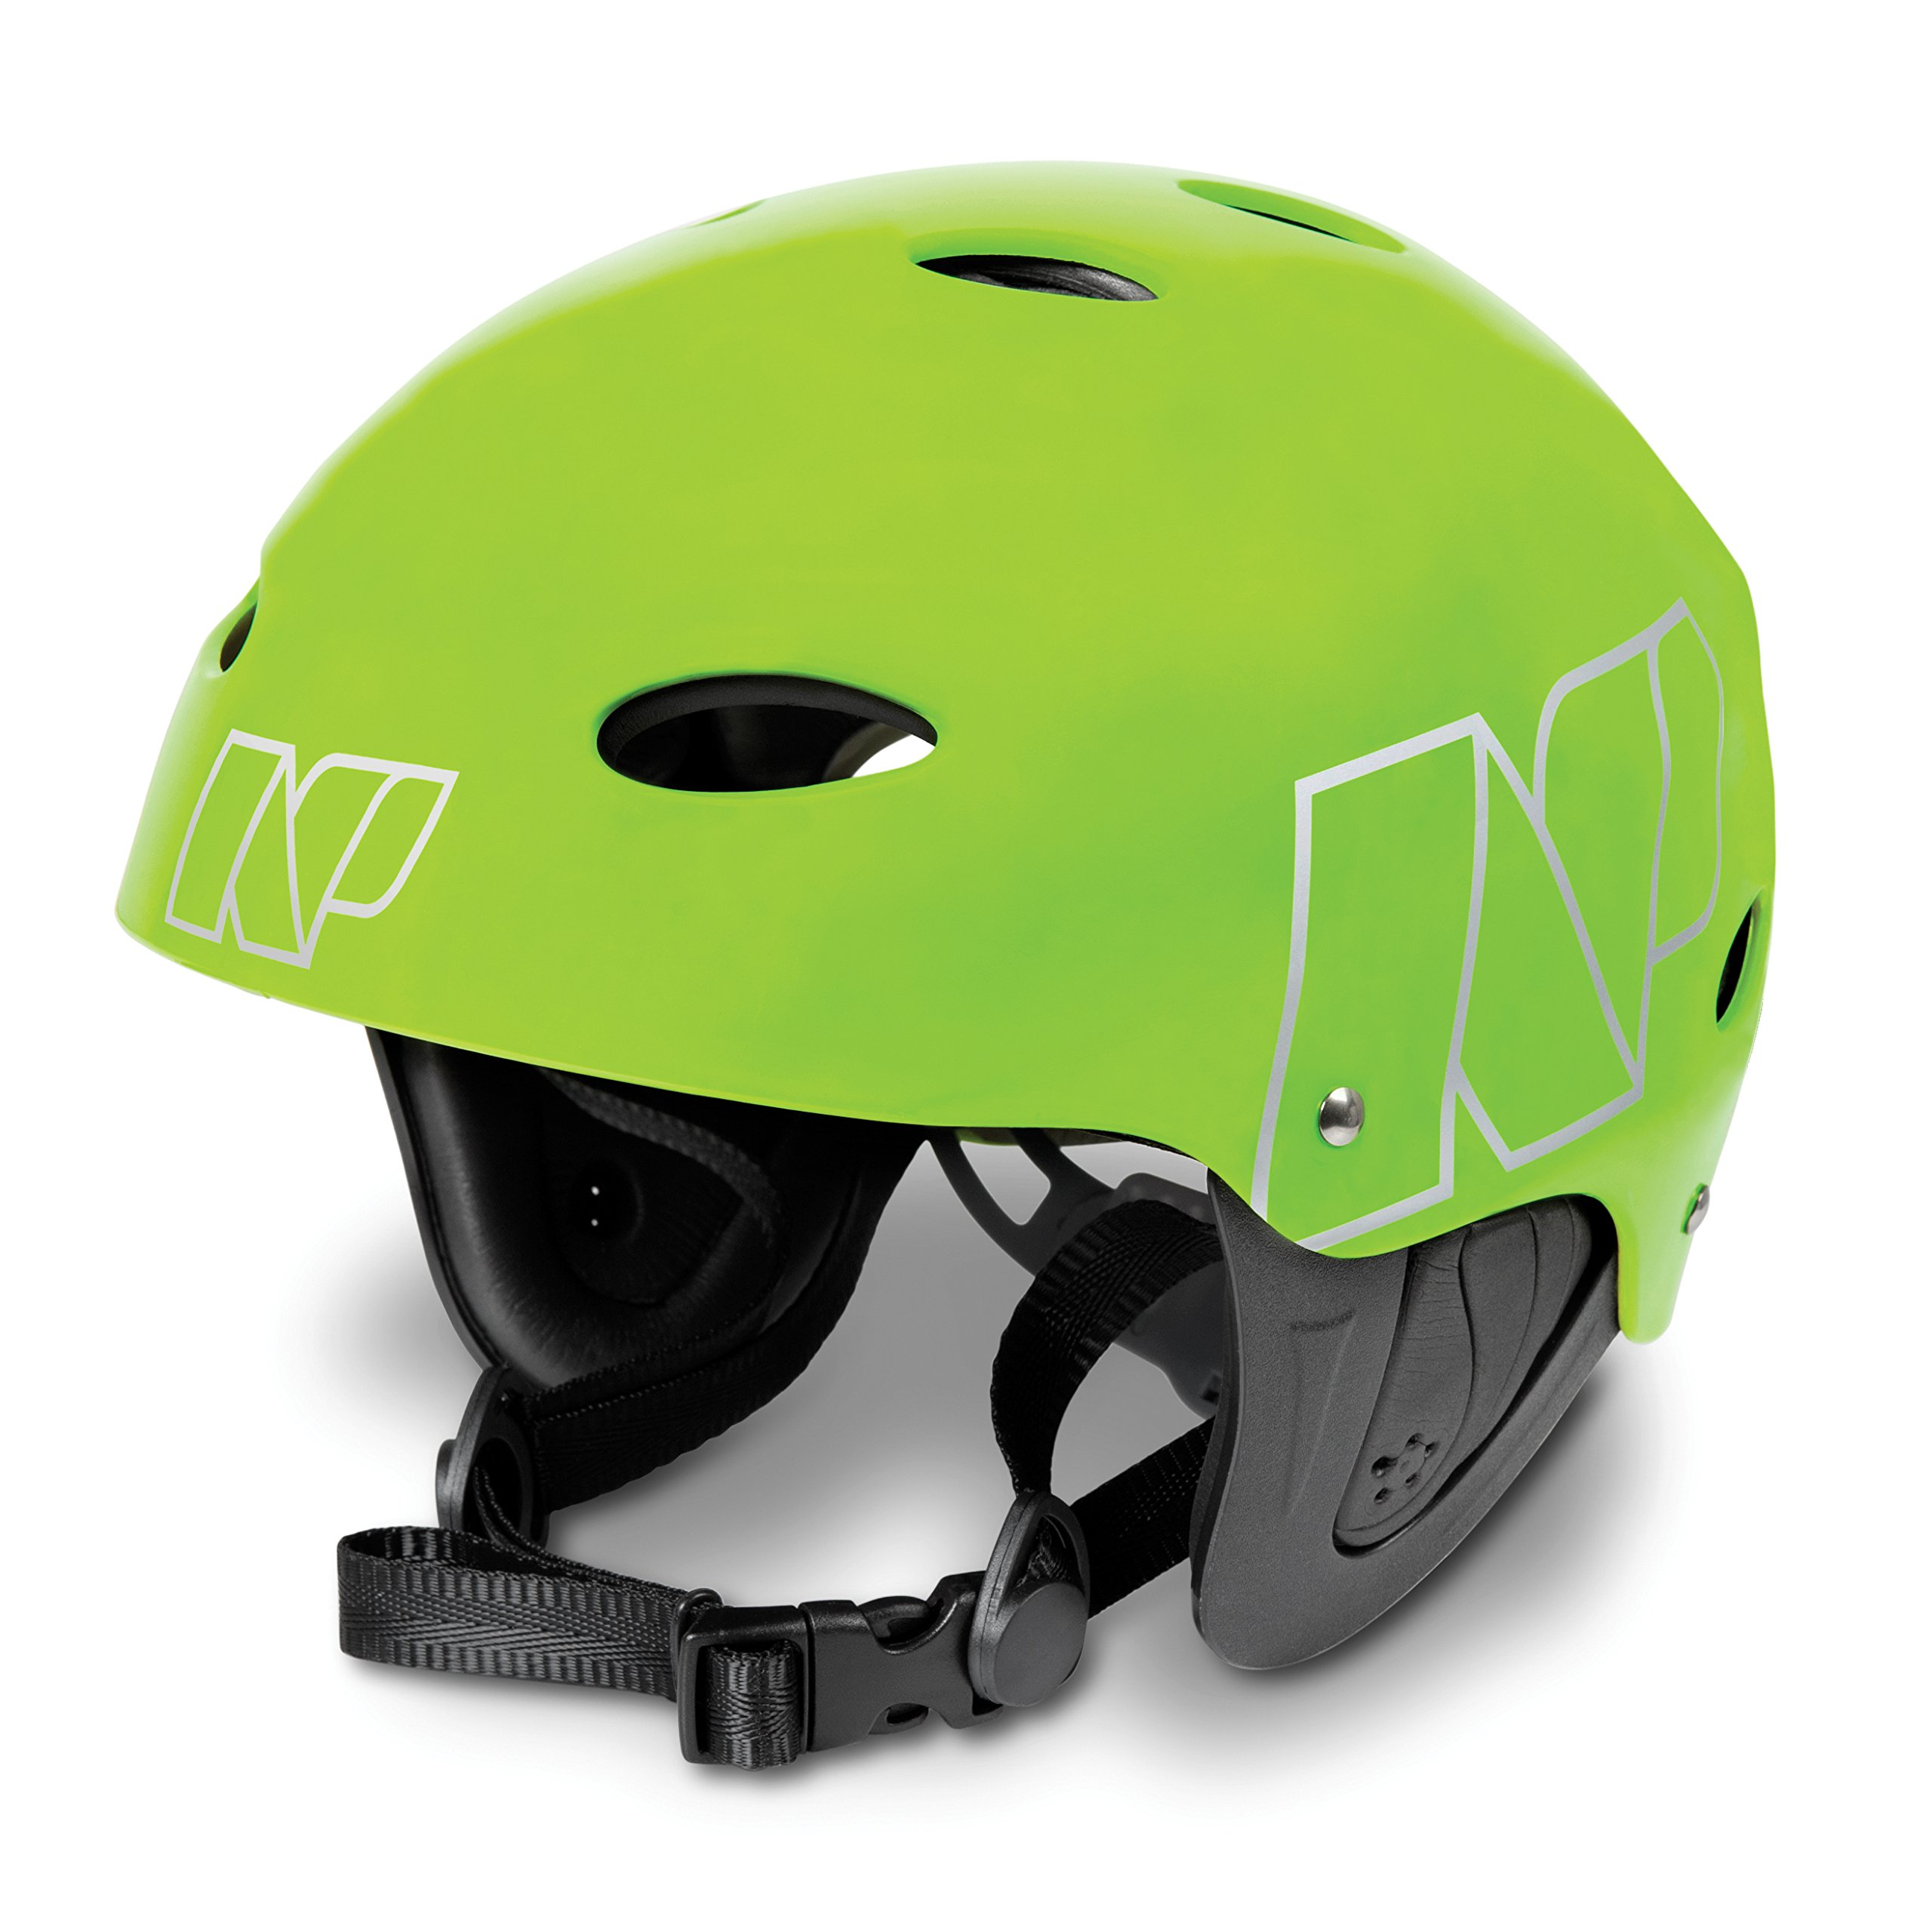 NP Surf Watersports Helmet, Flouro Green Matt, Large